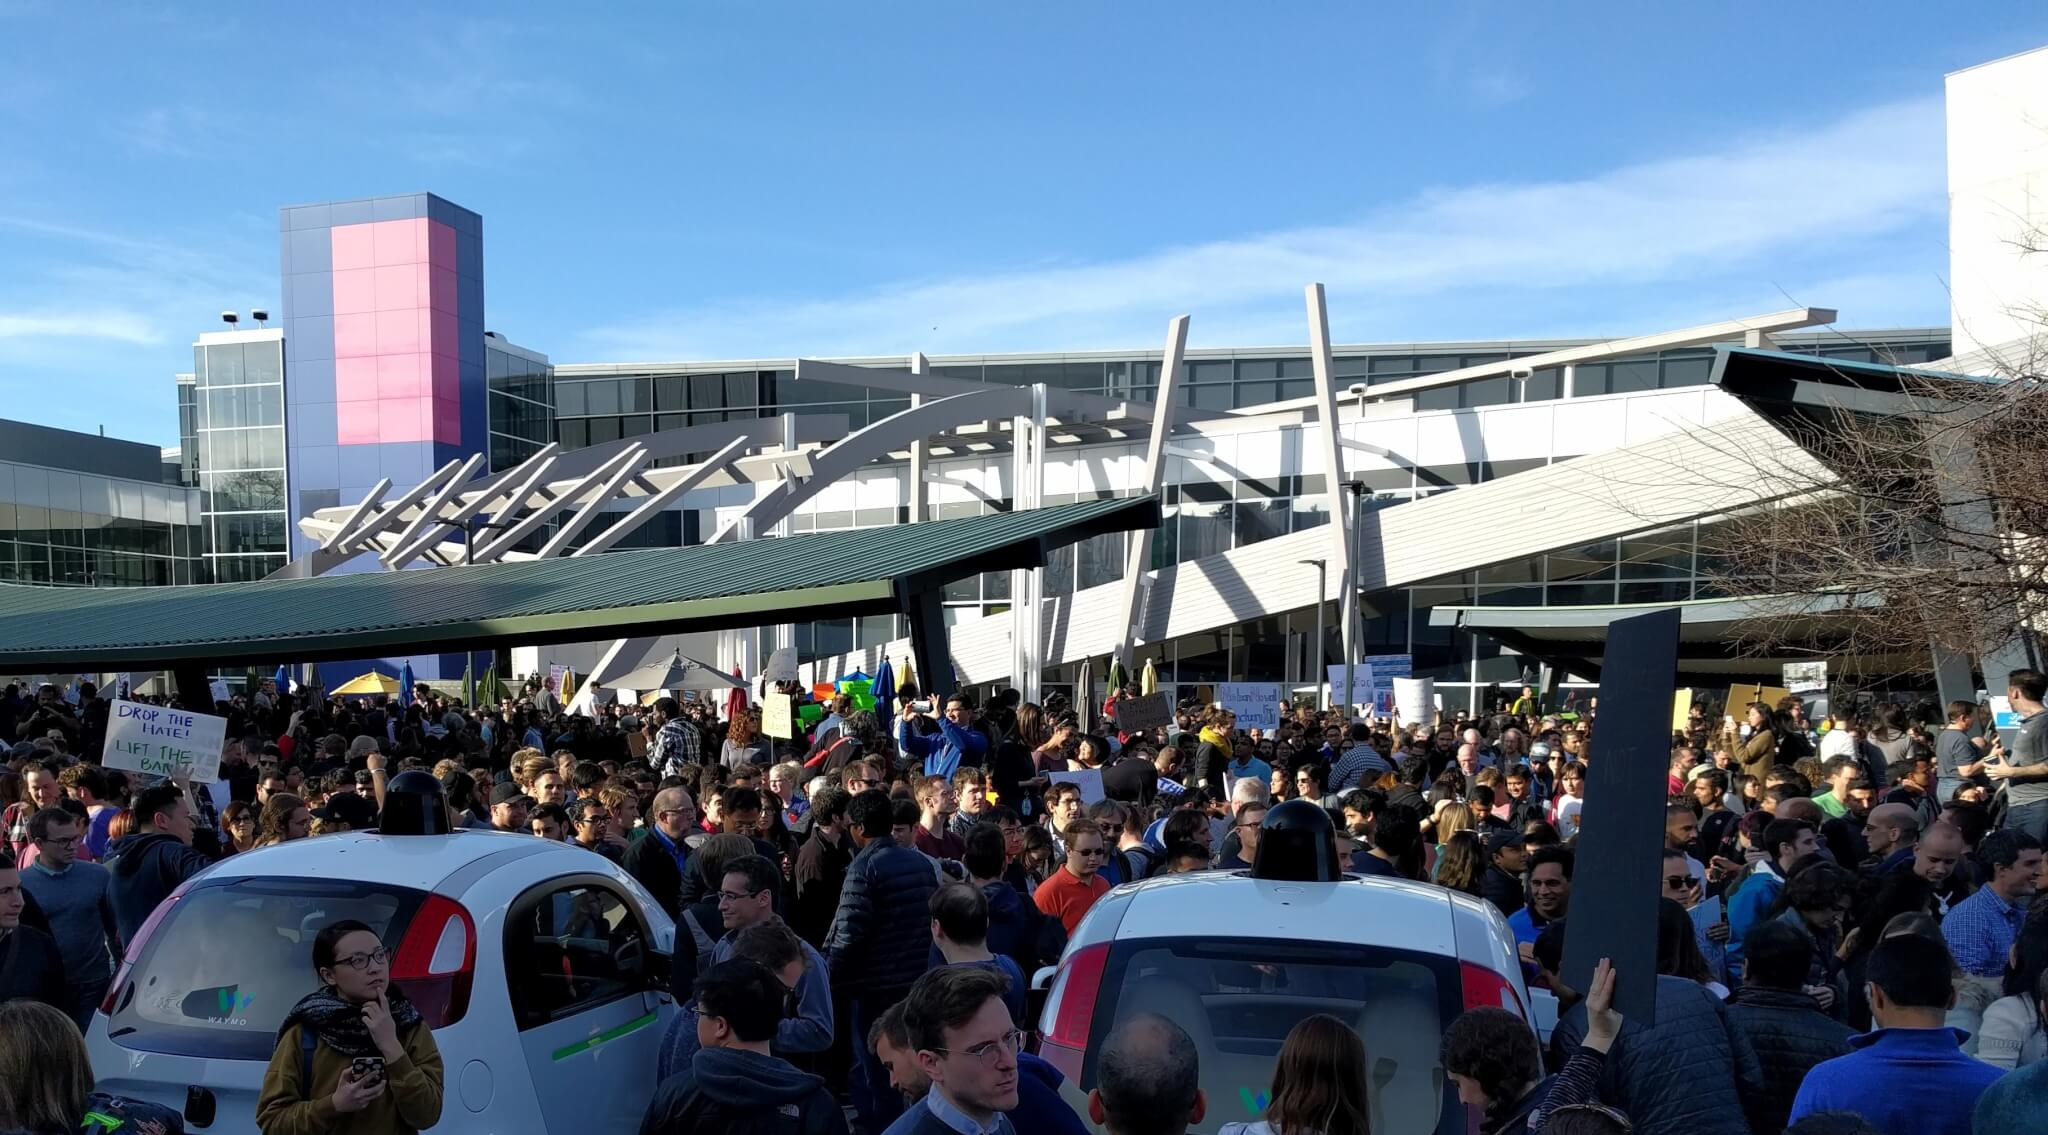 Protests at the headquarters of Google in Mountain View, January 30, 2017. 2,000 Google workers from campuses around the world staged a walkout.